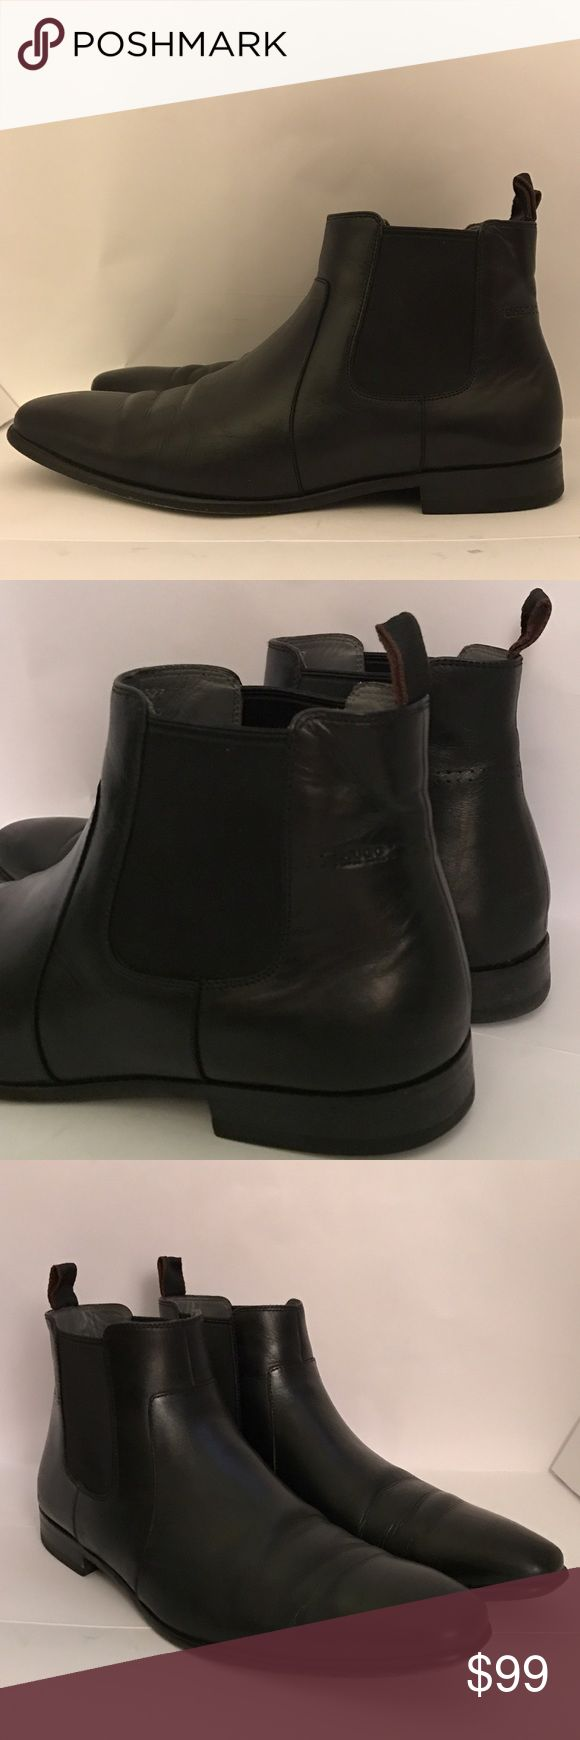 HUGO BOSS Black Leather Ankle Boots Gently used in great condition. High upper. Blake stitching. Long toe. Leather sole. Leather insole. Leather interior. Logo on underside of sole. Elastic on either side of the ankle. Smooth and textured leather. Color: black . Size US 10.5 Hugo Boss Shoes Boots